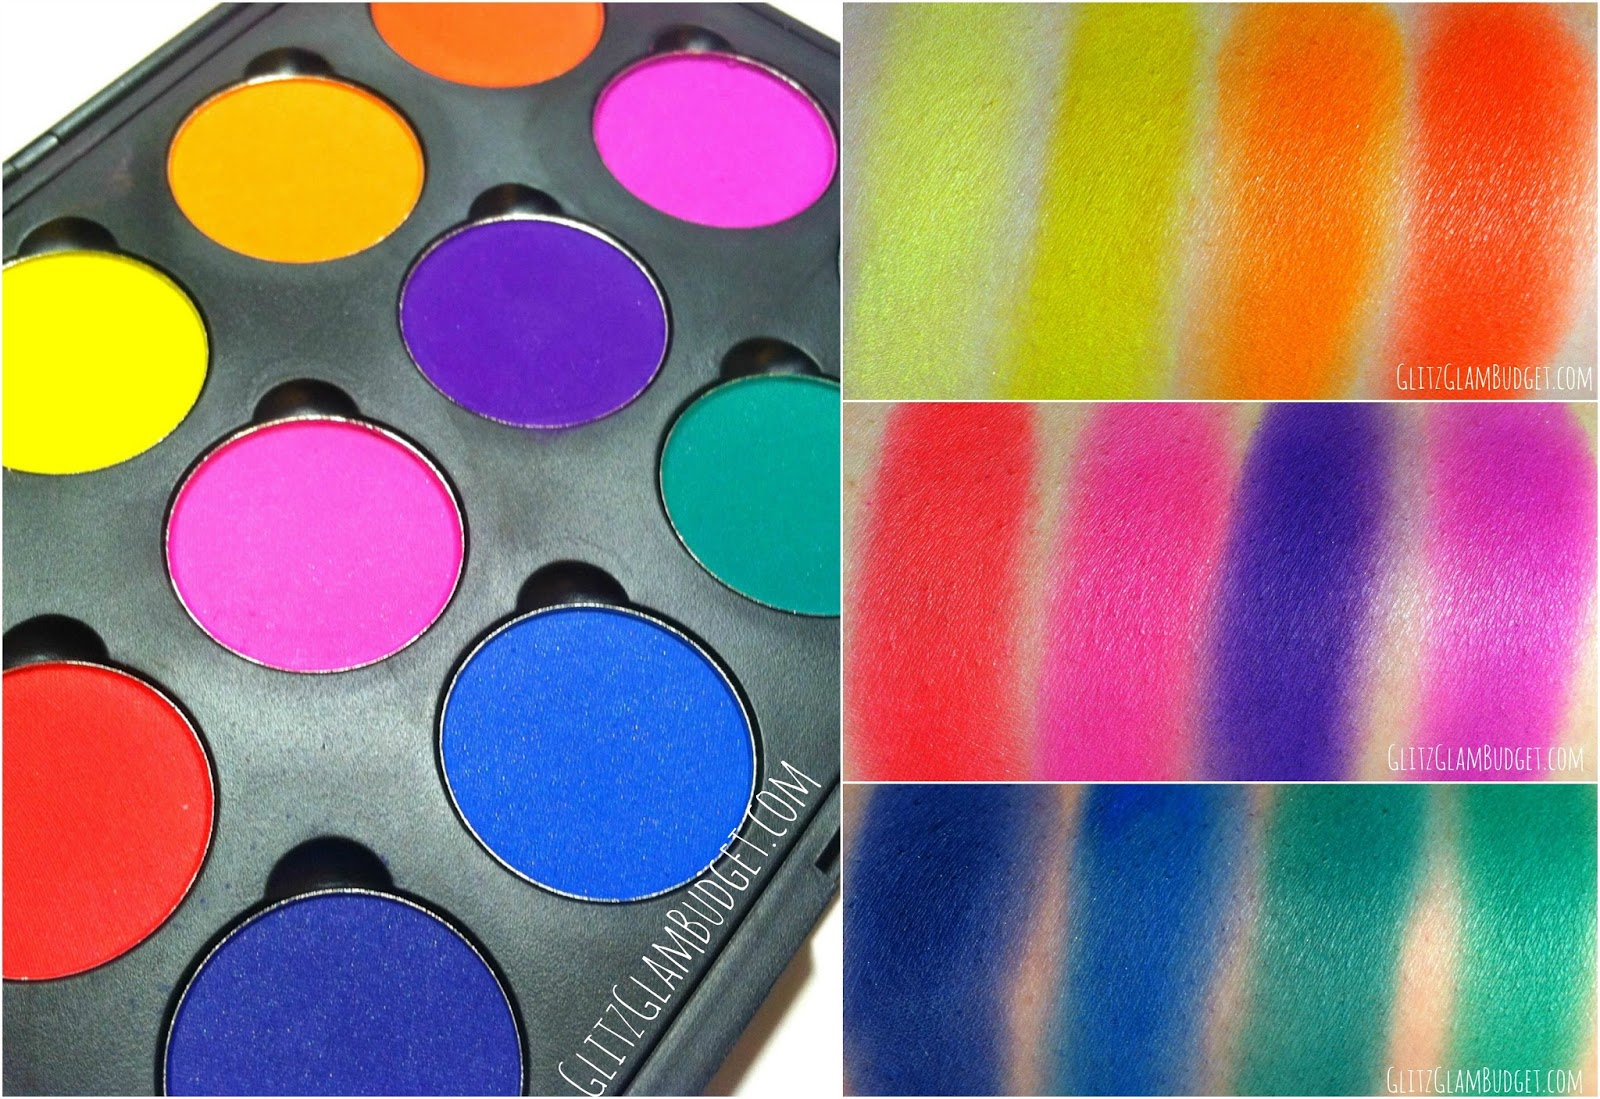 Coastal Scents Creative Me 1 Palette Swatches & Review